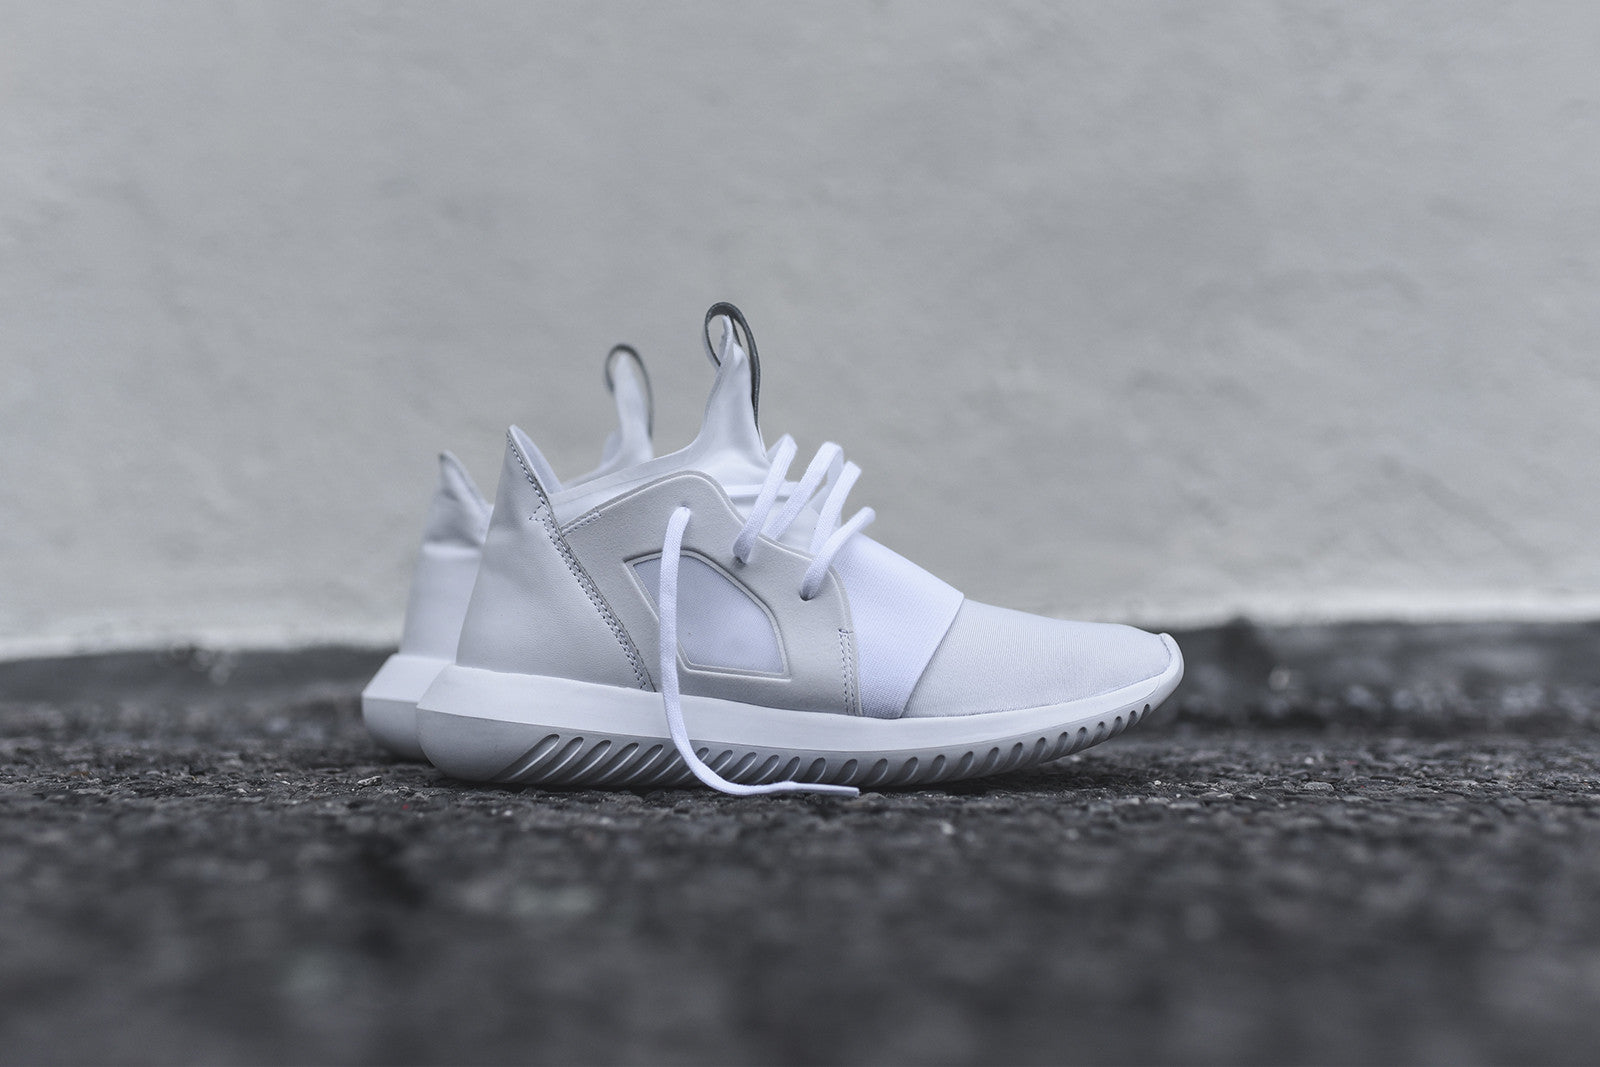 on sale 96057 16fa6 WMNS Adidas Tubular Defiant - White1.jpg v 1456768417